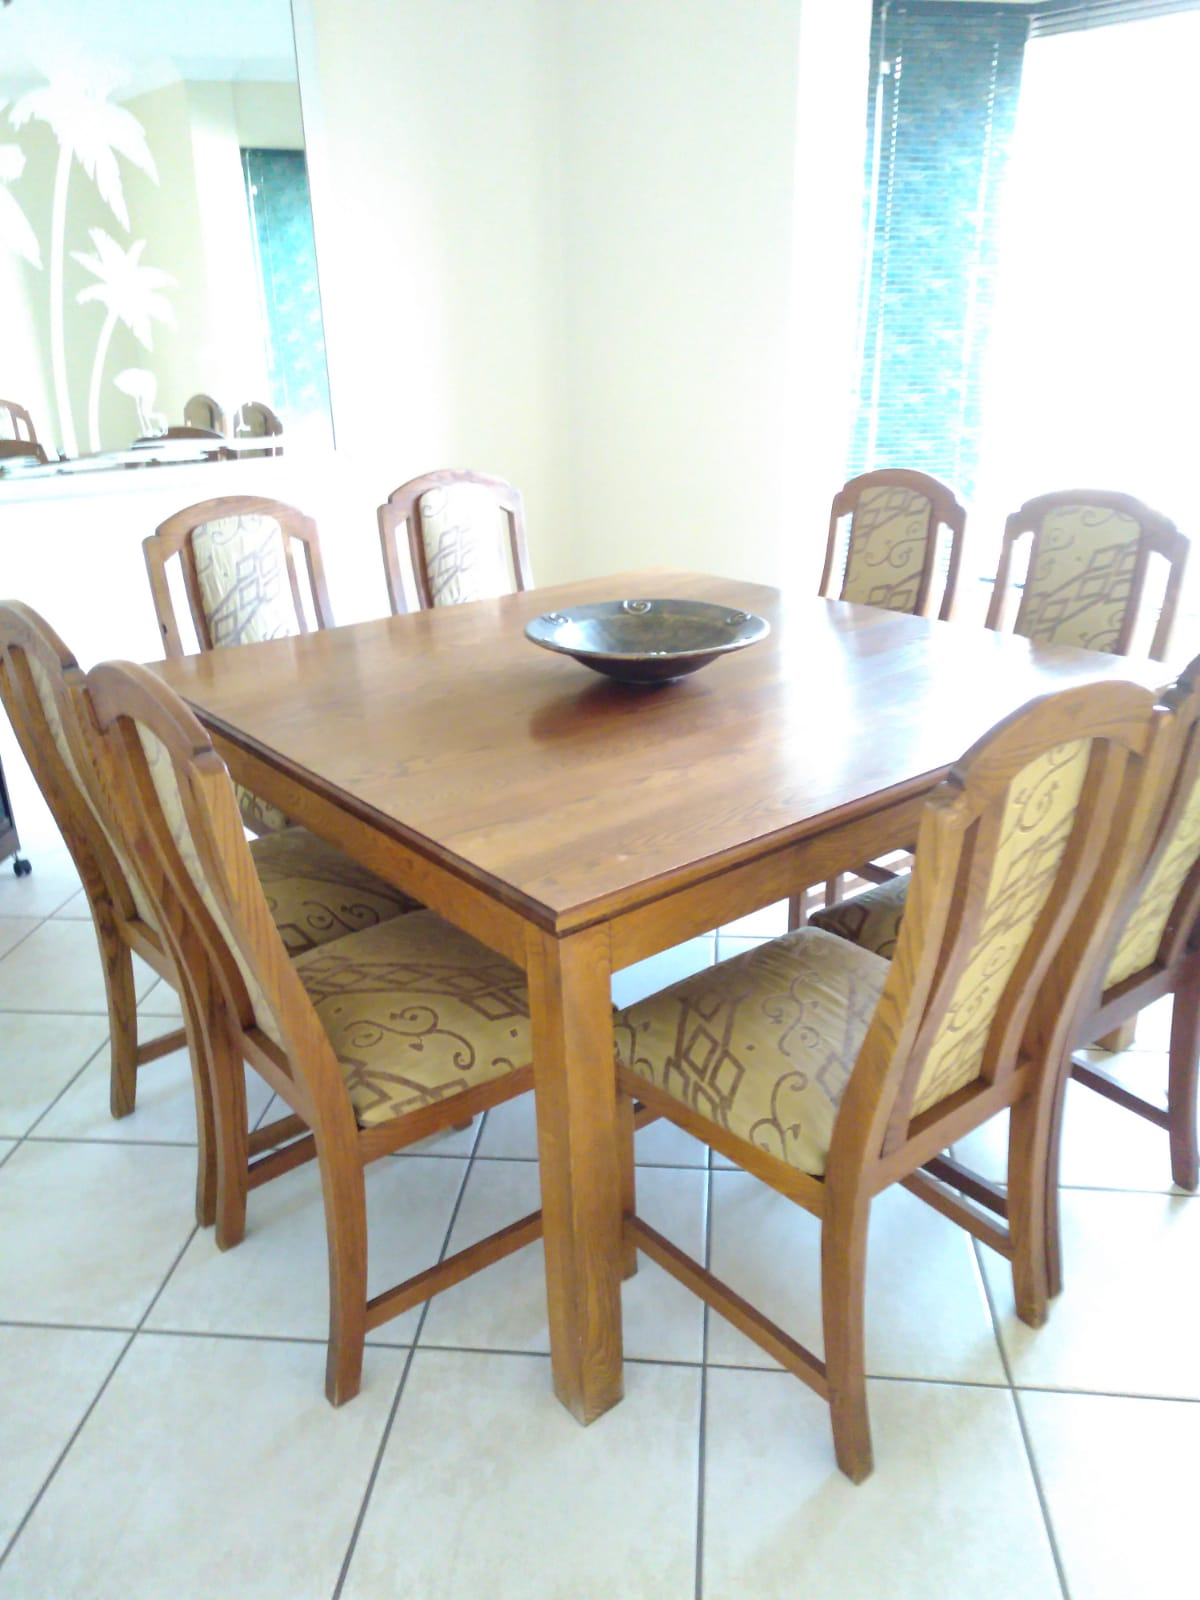 Dining Room Table With Chairs Junk Mail